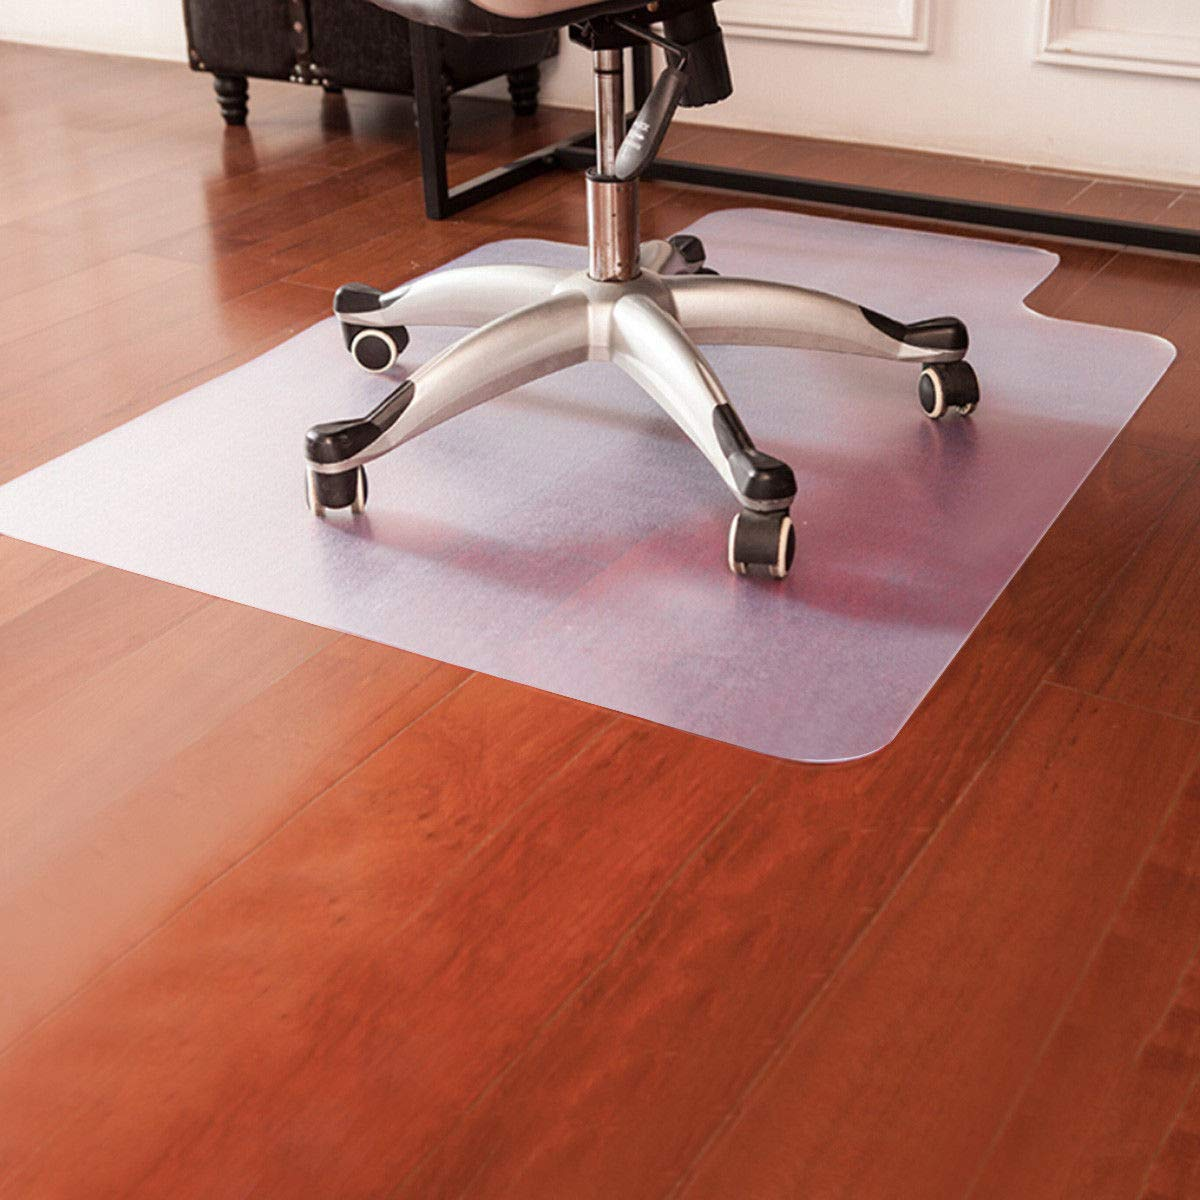 Goplus PVC Chair Mat for Hardwood Floor 48'' x 36''Floor Protector Multi Purpose for Office and Home Thick Clear Anti-Slip Floor Protective Mats (48'' x 36'')